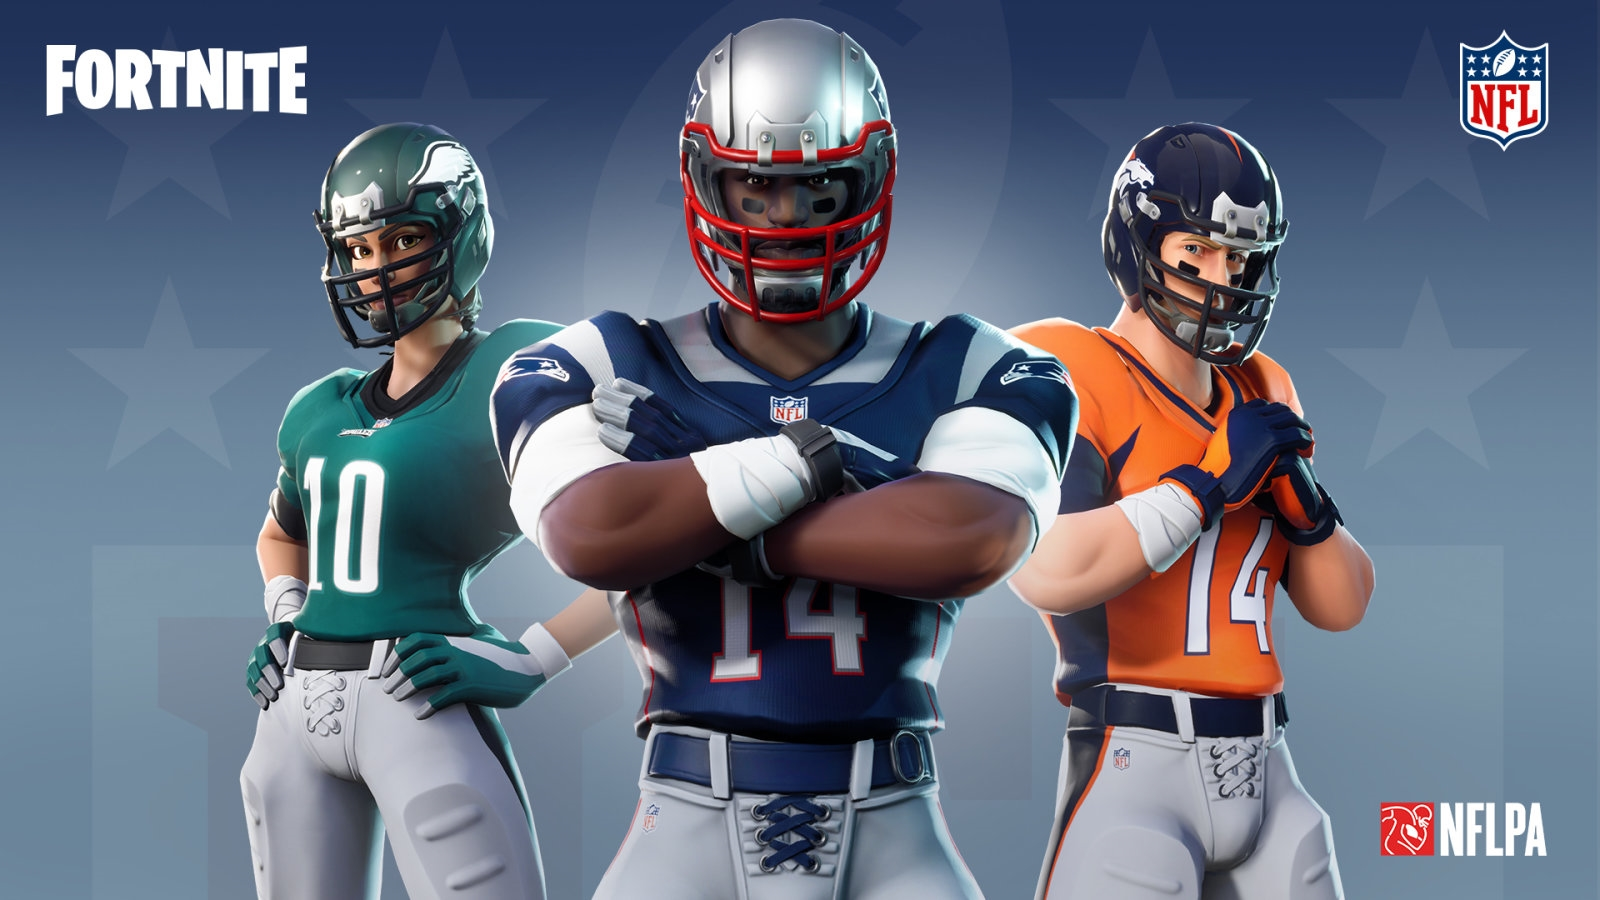 'Fortnite' is adding NFL team jerseys, emotes and more | DeviceDaily.com